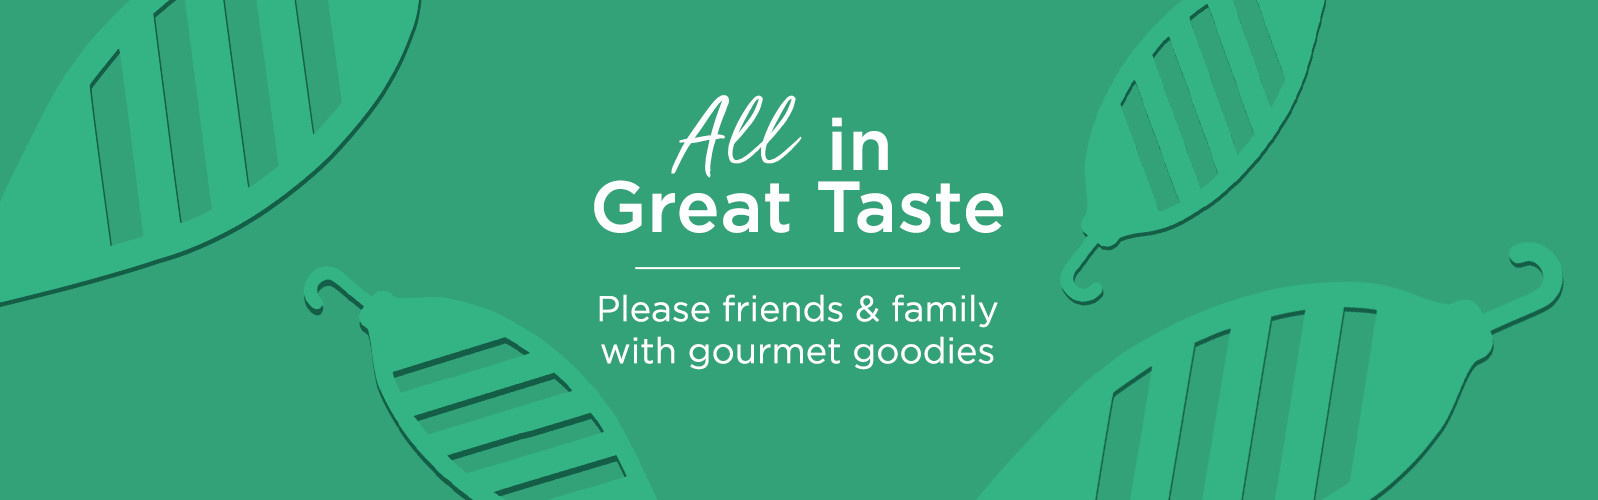 All in Great Taste. Please friends & family with gourmet goodies